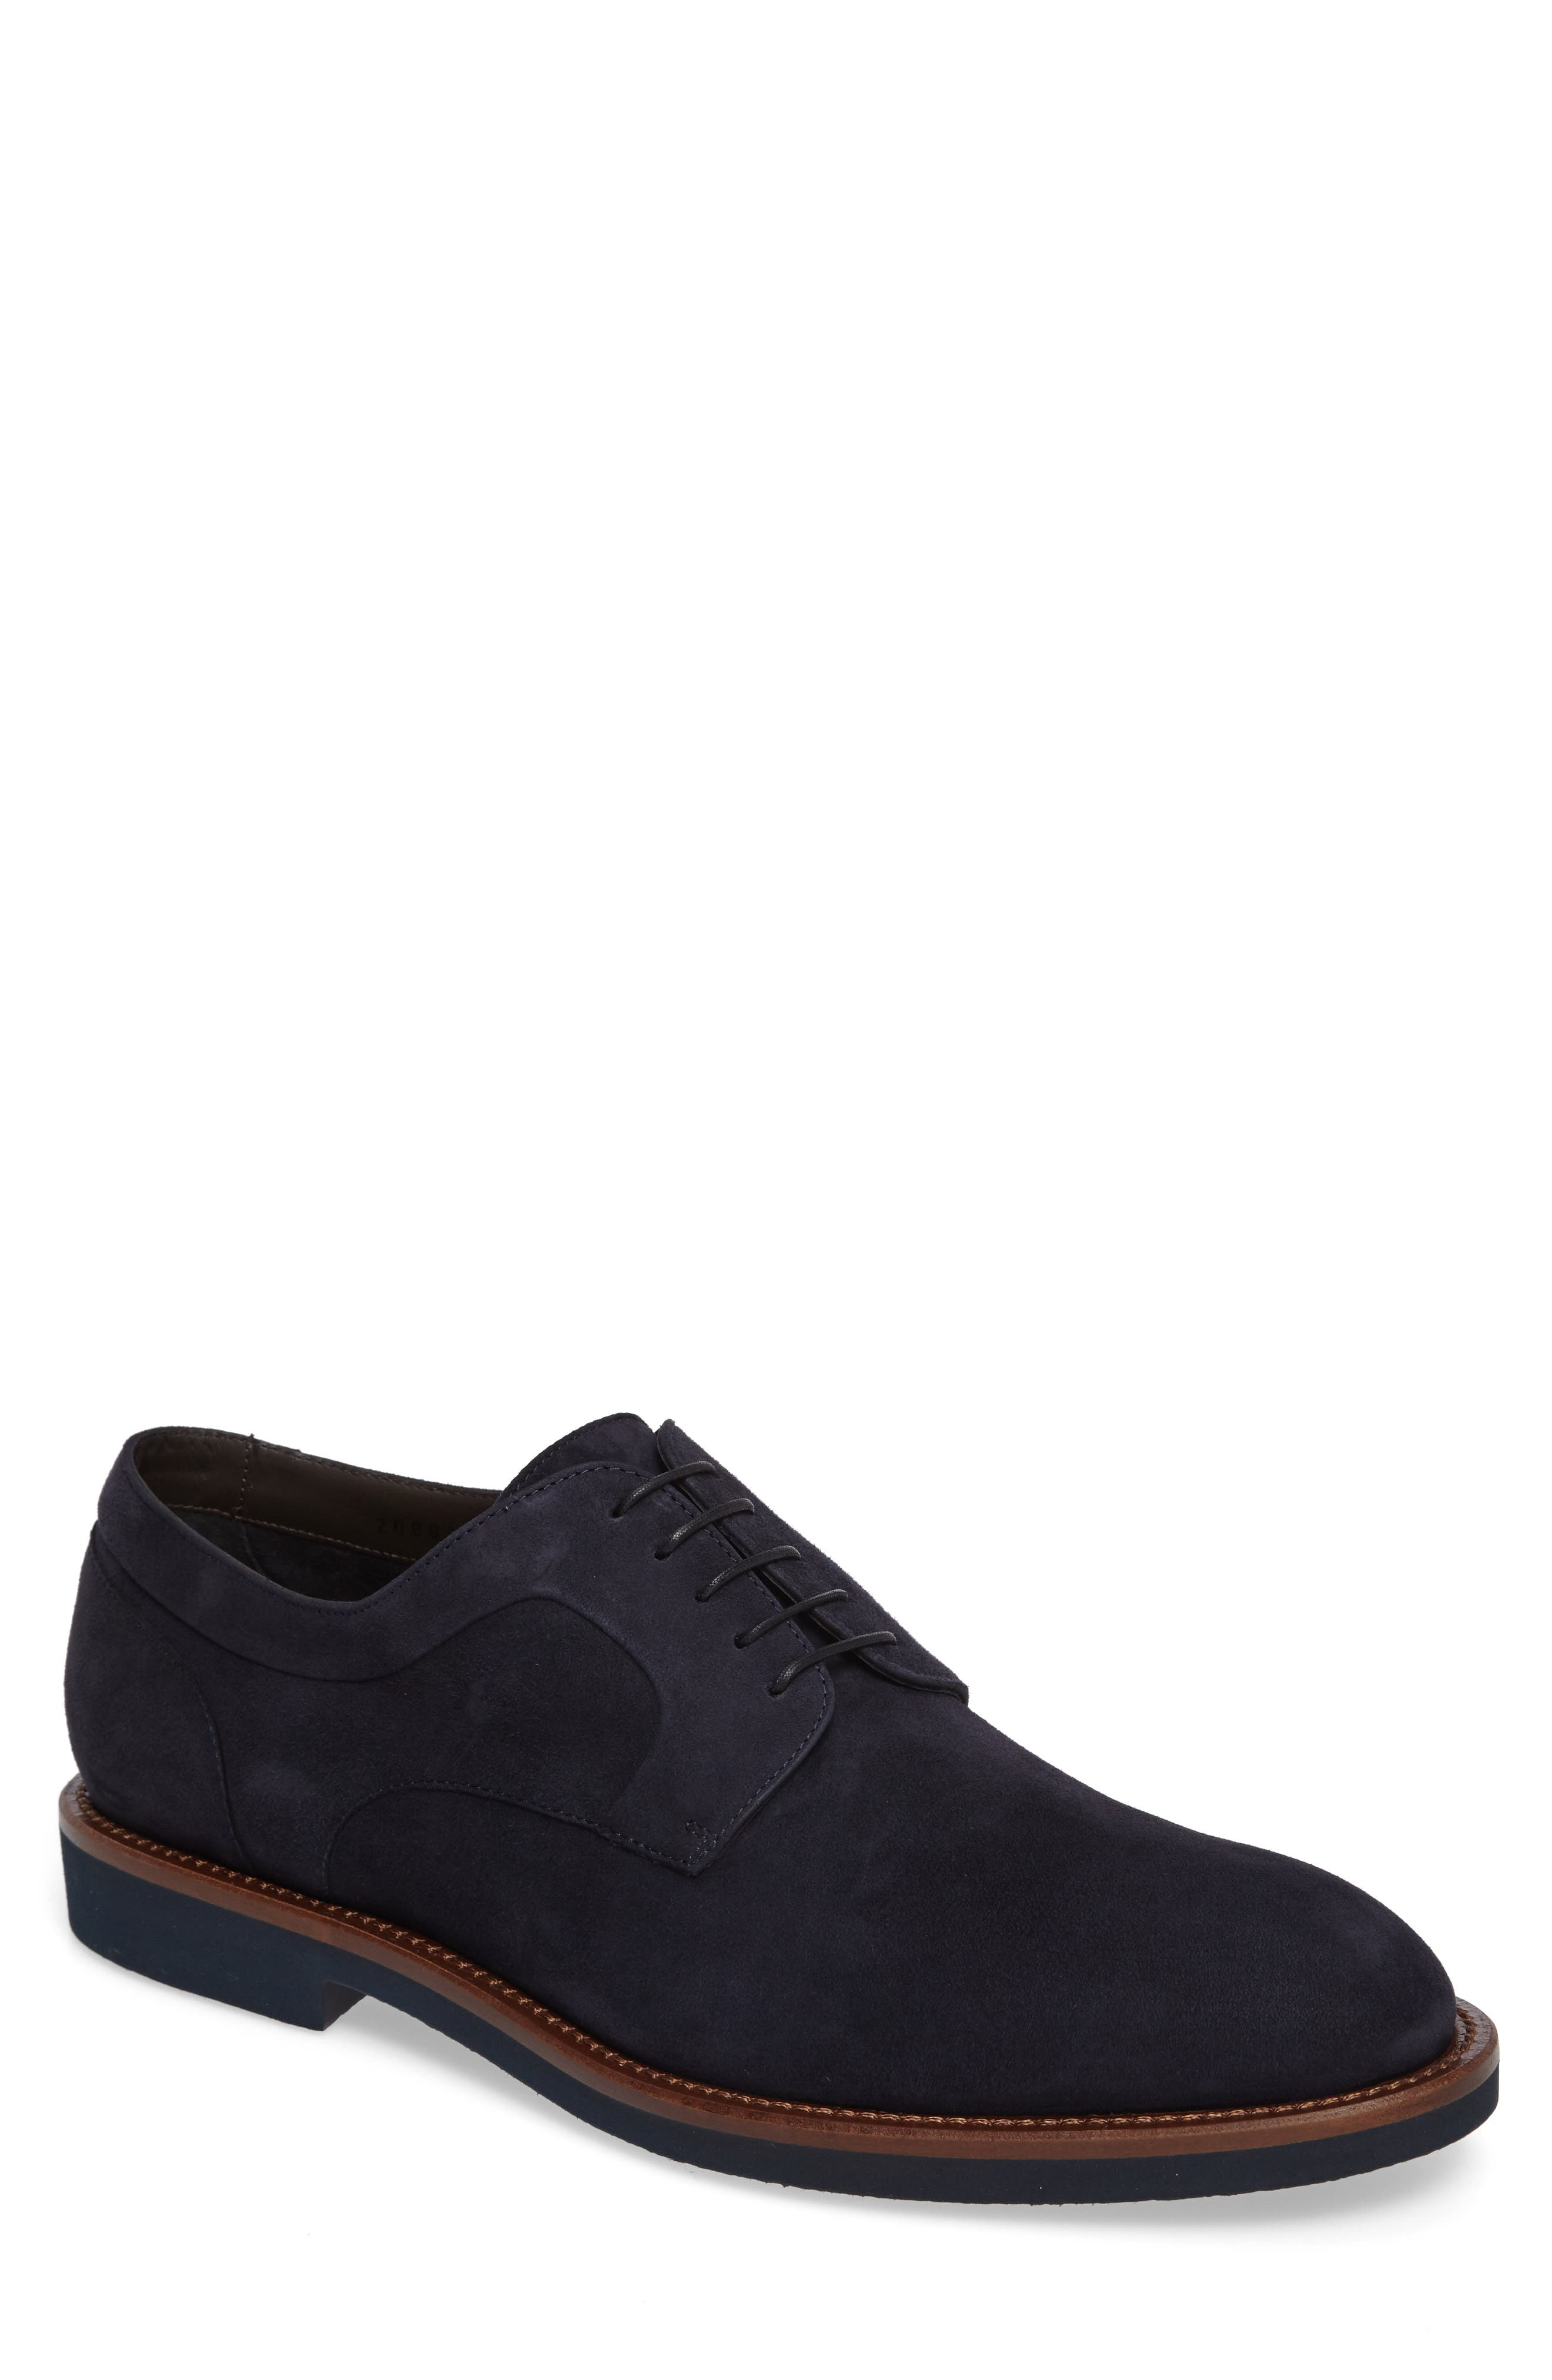 BOSS Eden Plain Toe Derby (Men)